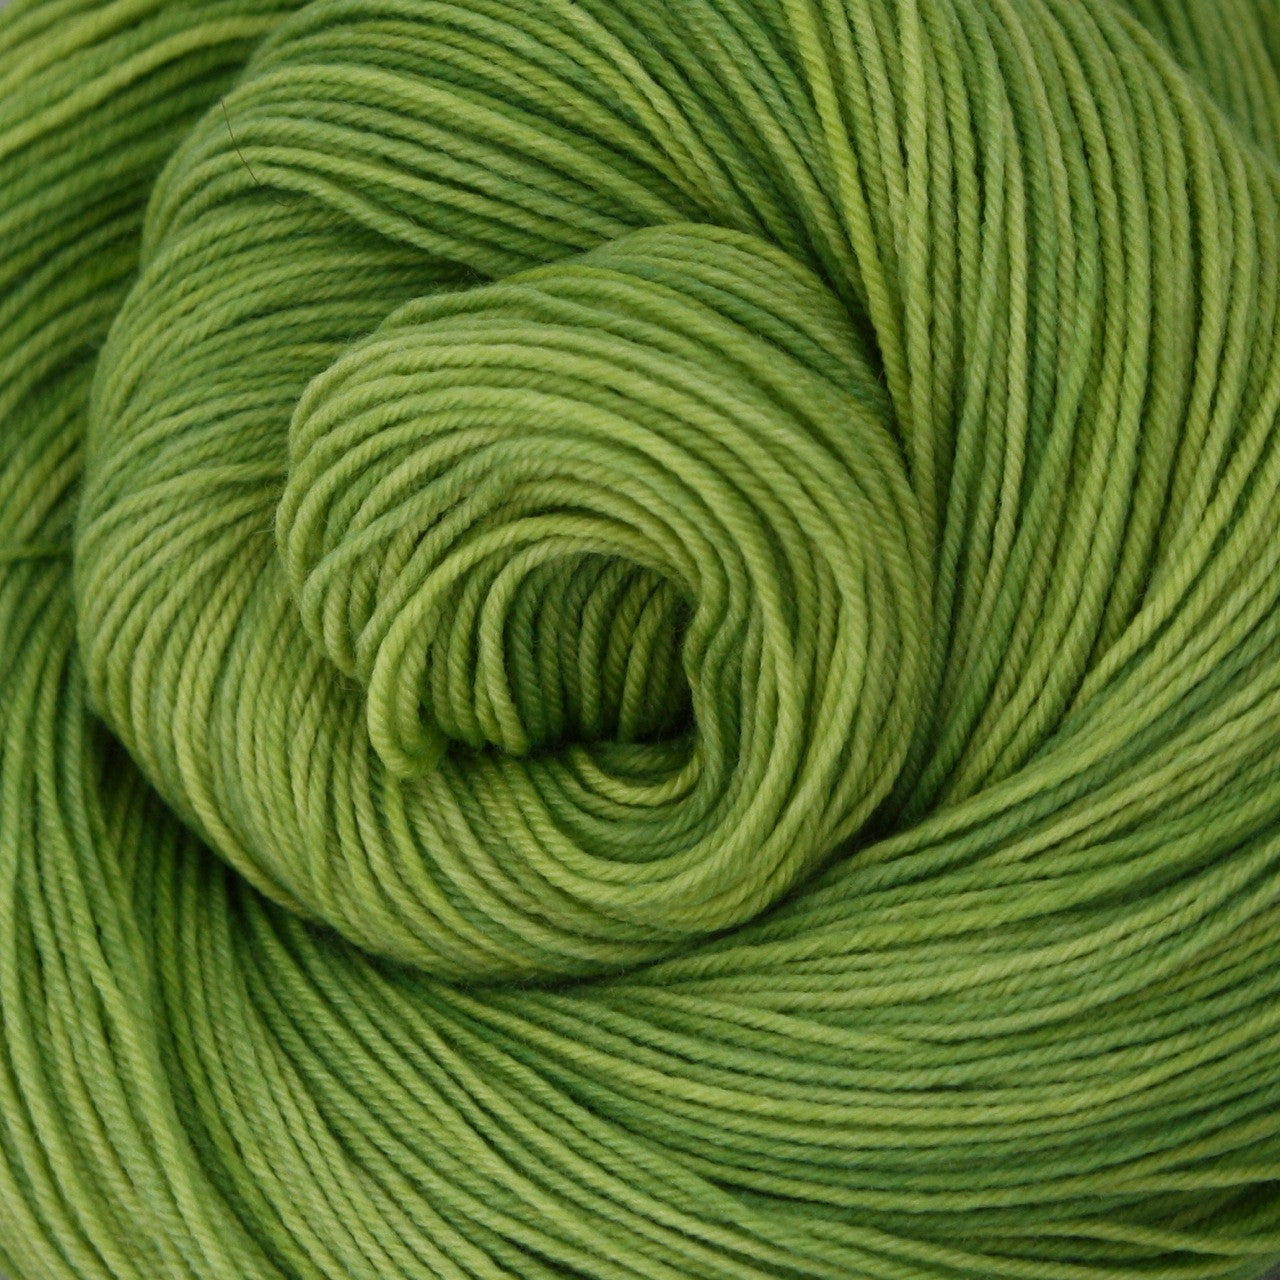 Athena Sock Yarn | Colorway: Sprout